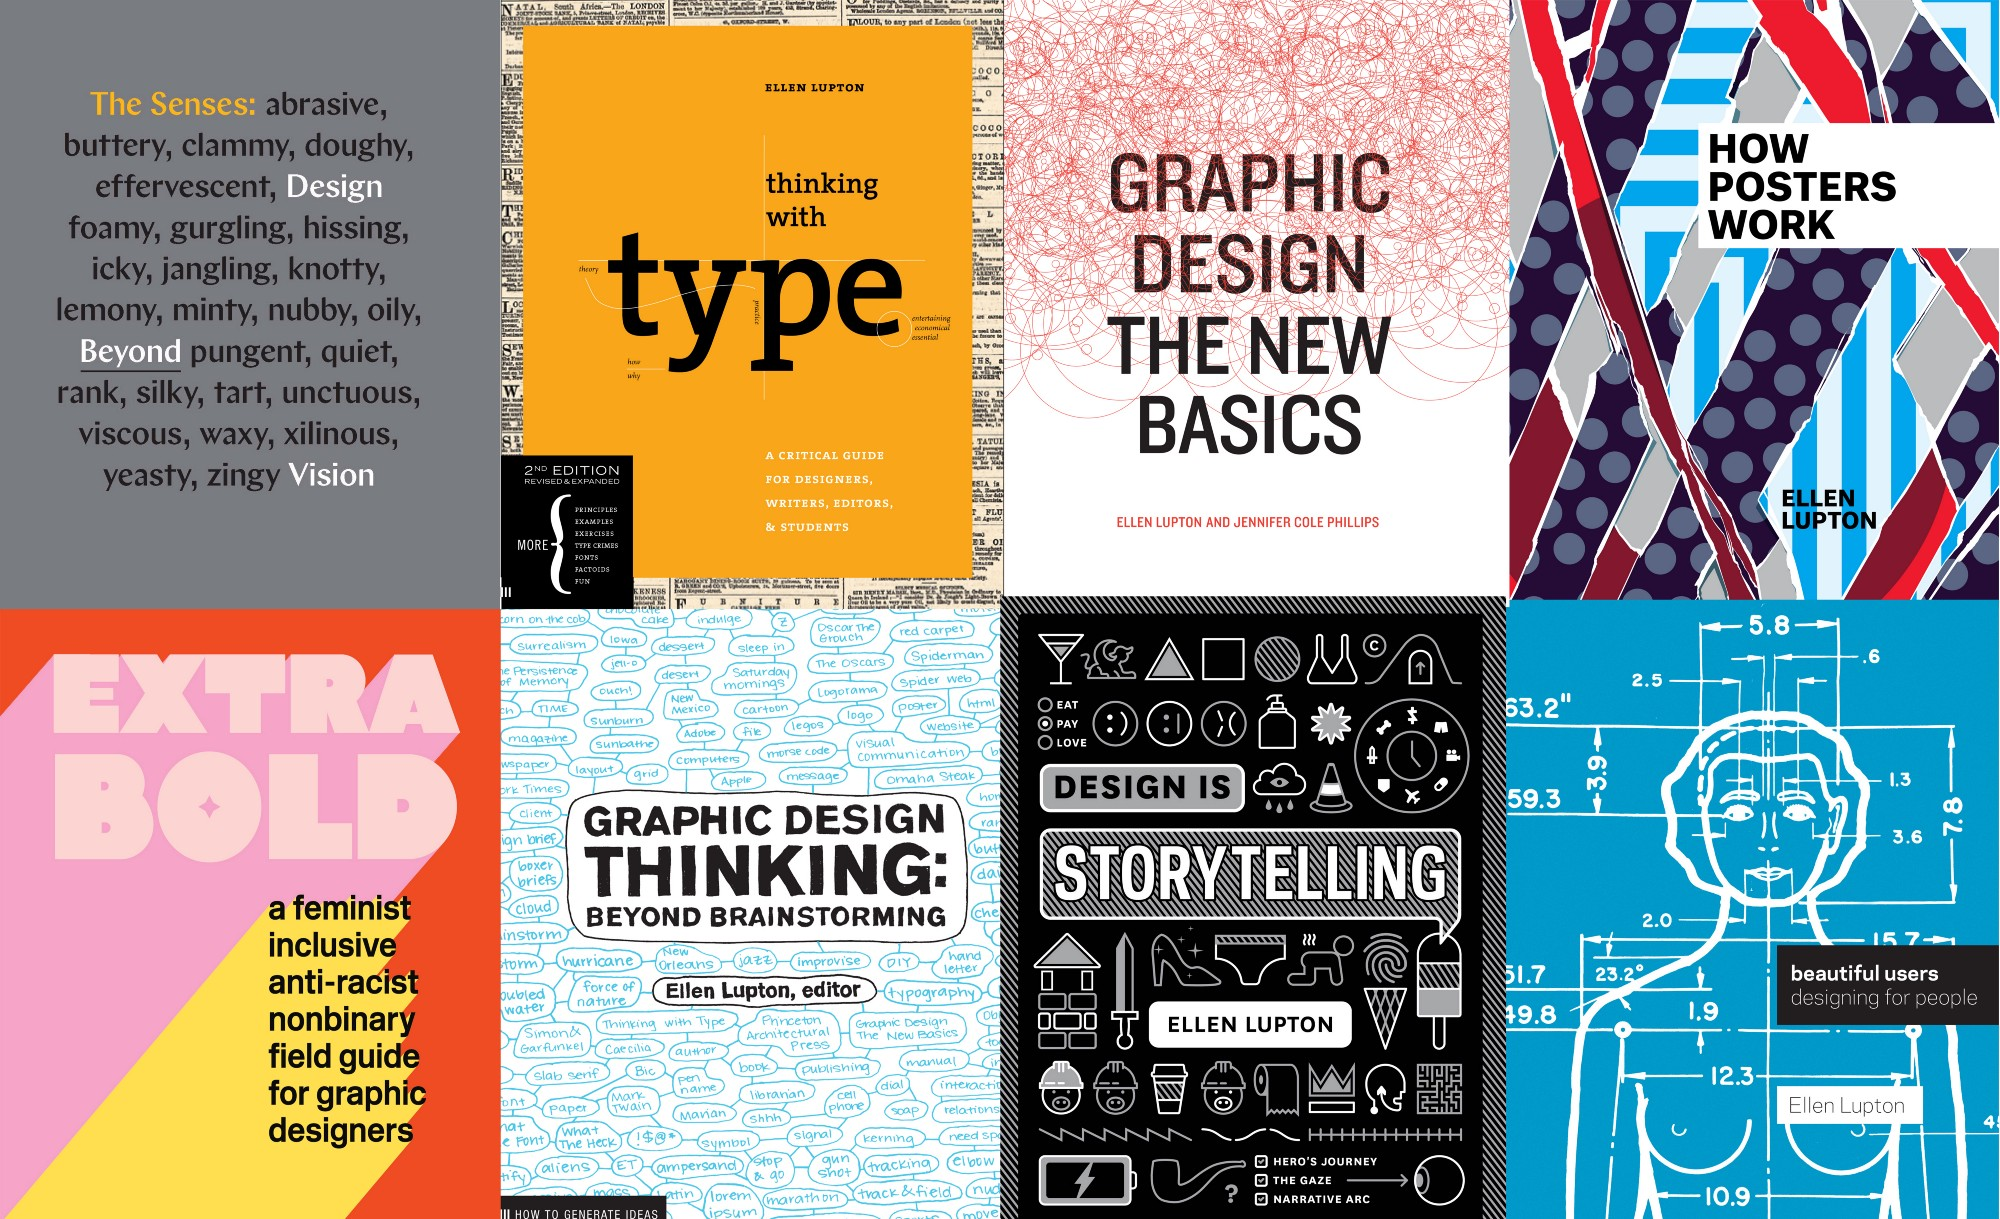 Cover images of Ellen Lupton's books: The Senses: Design Beyond Vision; Thinking with Type; Graphic Design: The New Basics; How Posters Work; Extra Bold; Graphic Design Thinking; Design is Storytelling; and Beautiful Users: Designing for Peopl